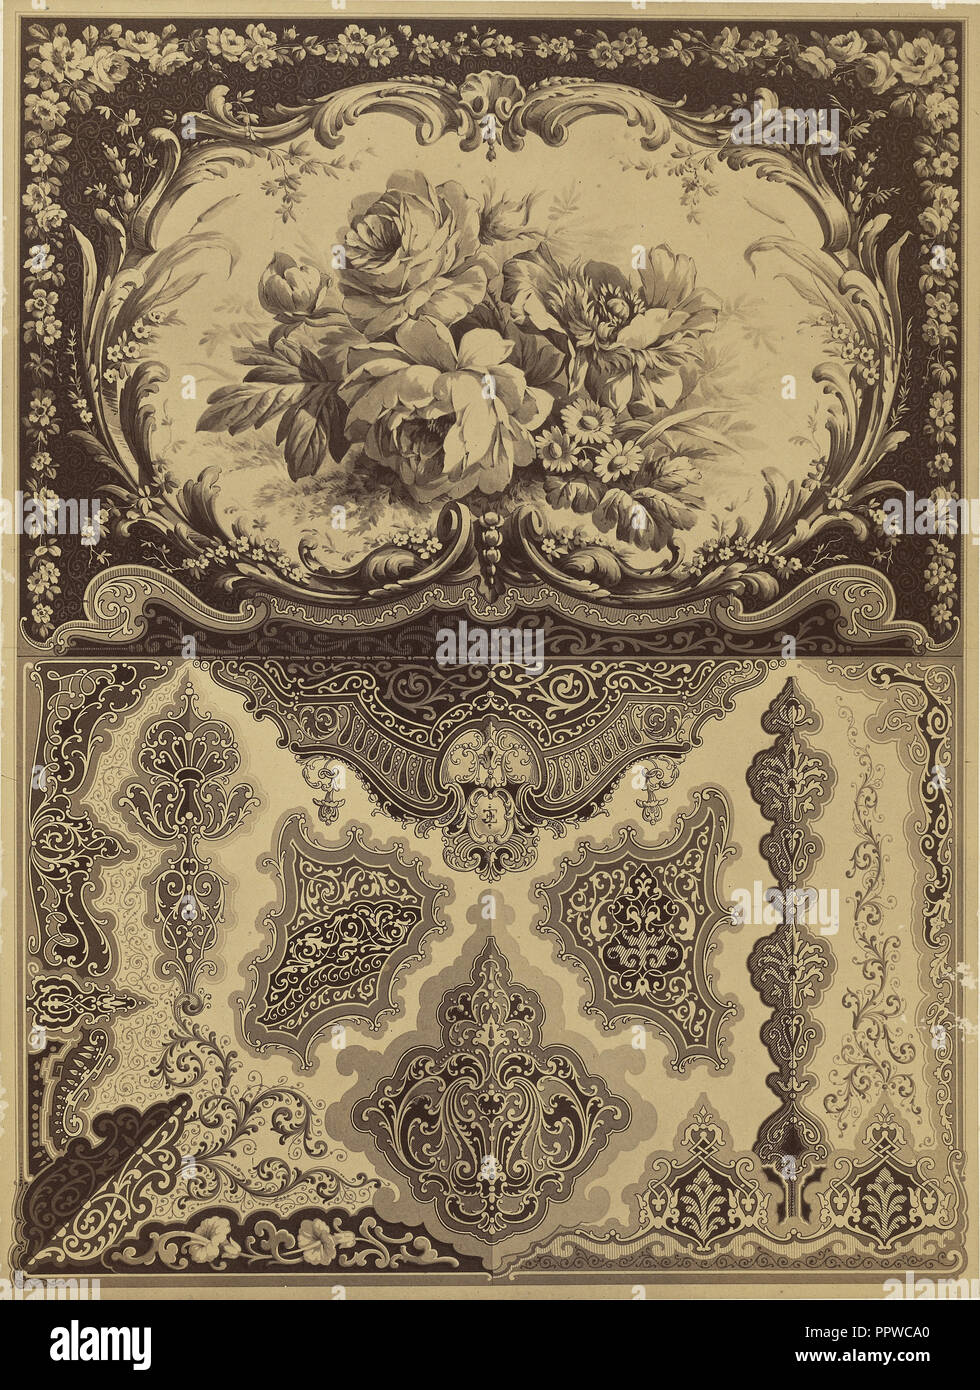 Decorative Pattern; E. Guichard, French, active 19th century, mid - late 19th century; Albumen silver print - Stock Image